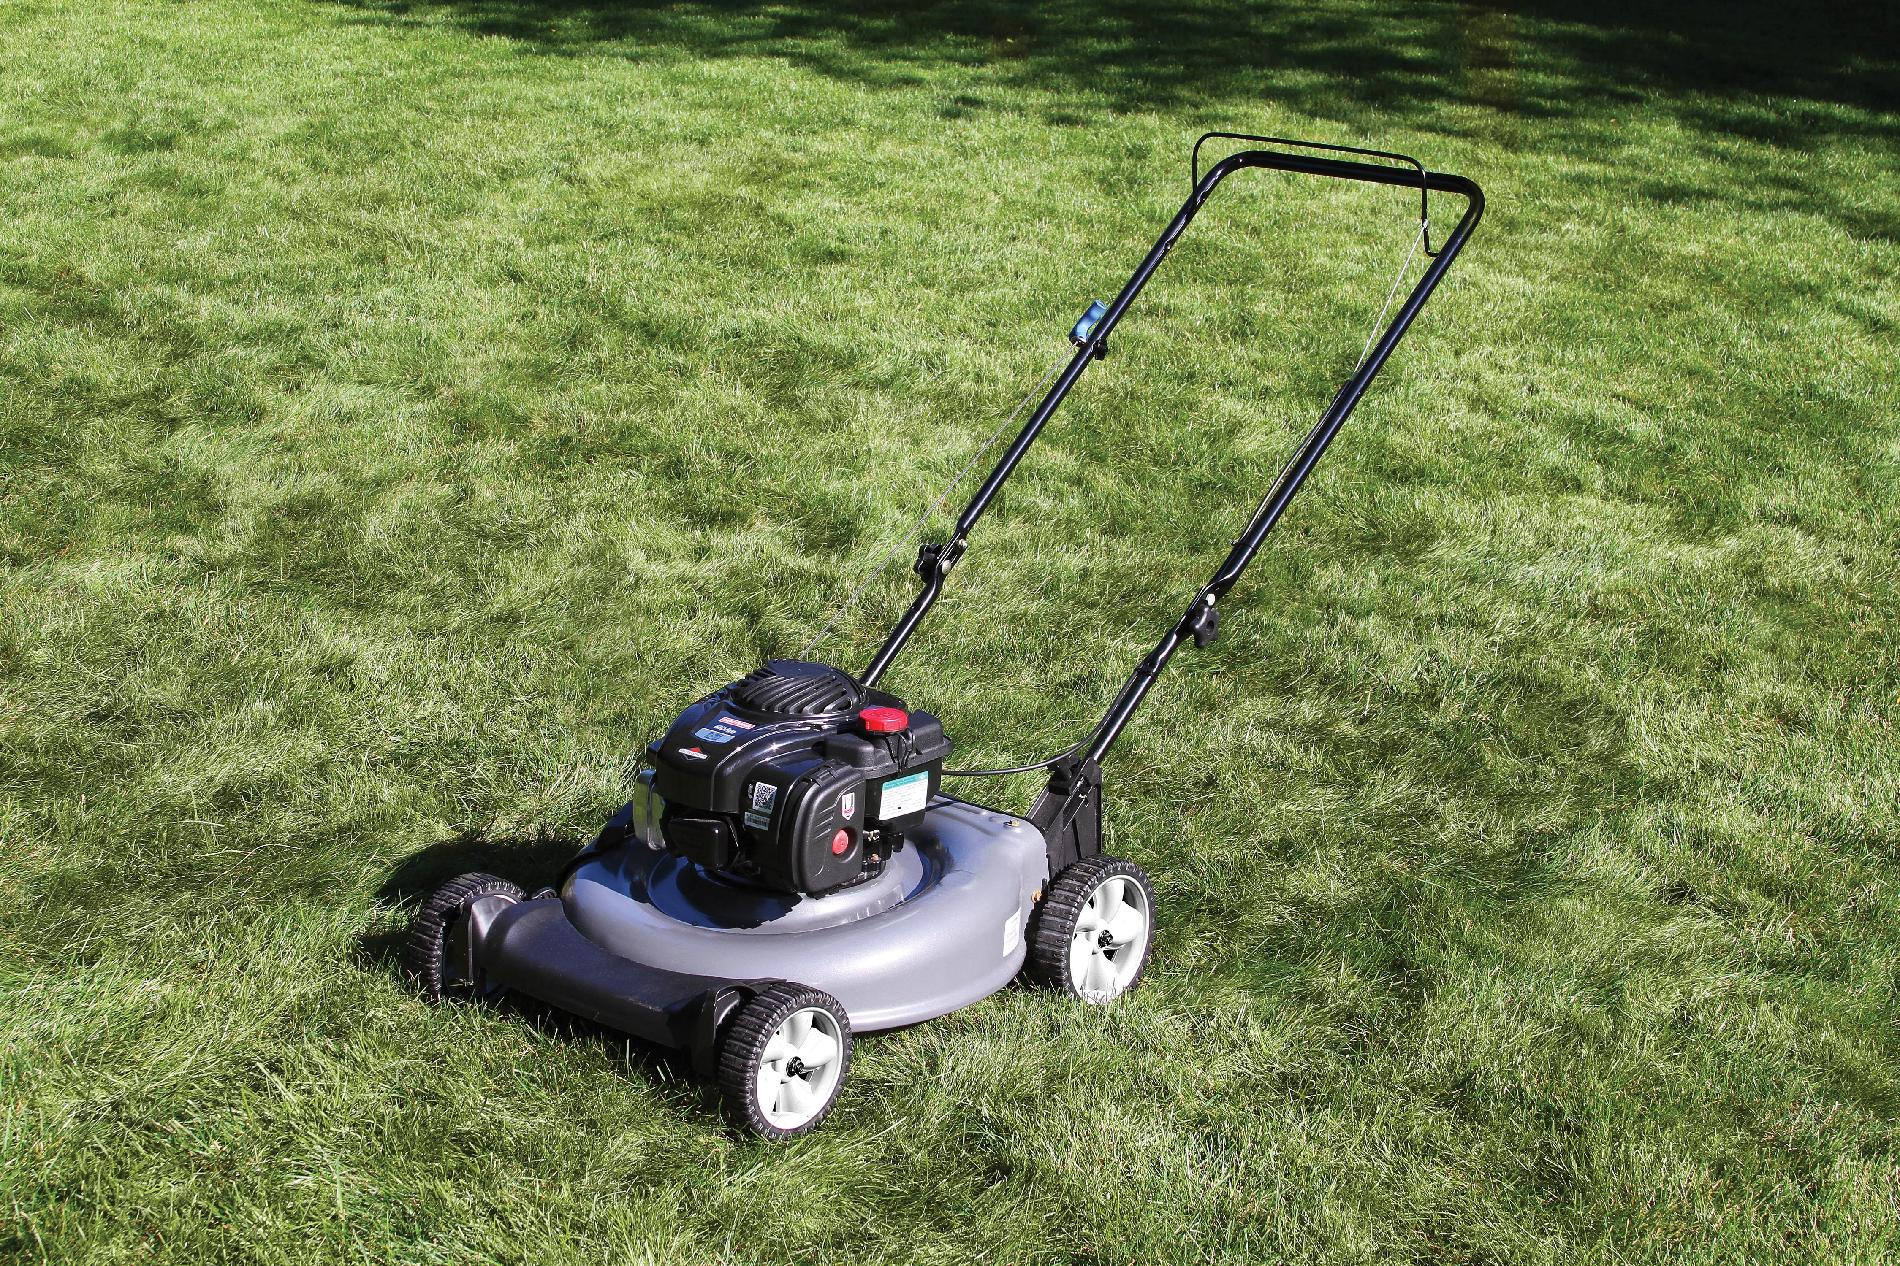 Craftsman 140cc* Briggs & Stratton Engine, Low Wheel Side Discharge Push Mower